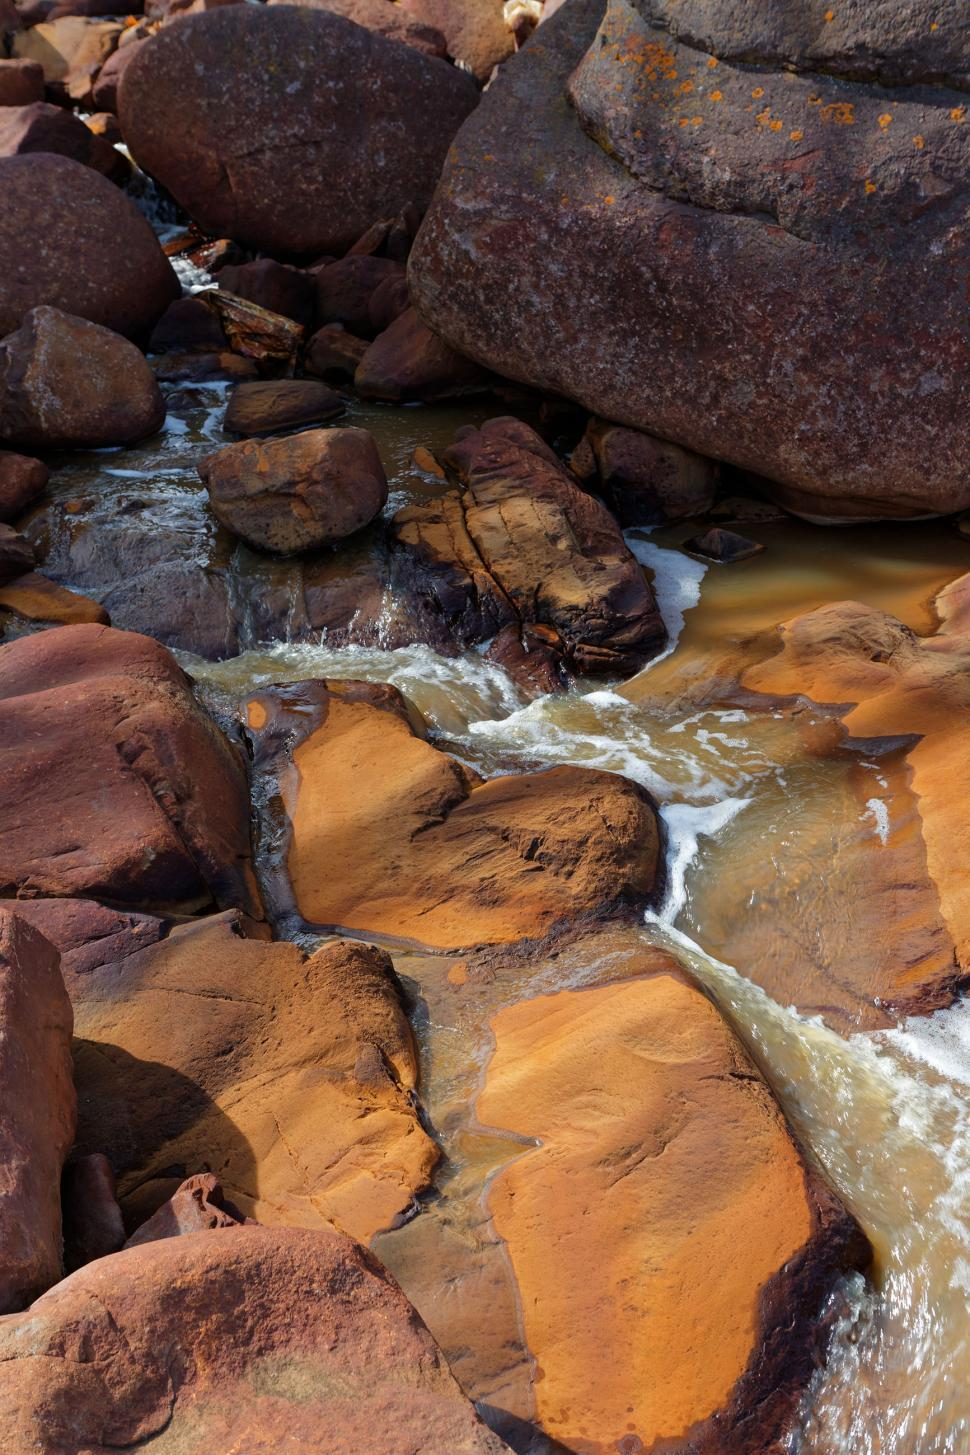 Download Free Stock HD Photo of Iron leachate on rocks Online